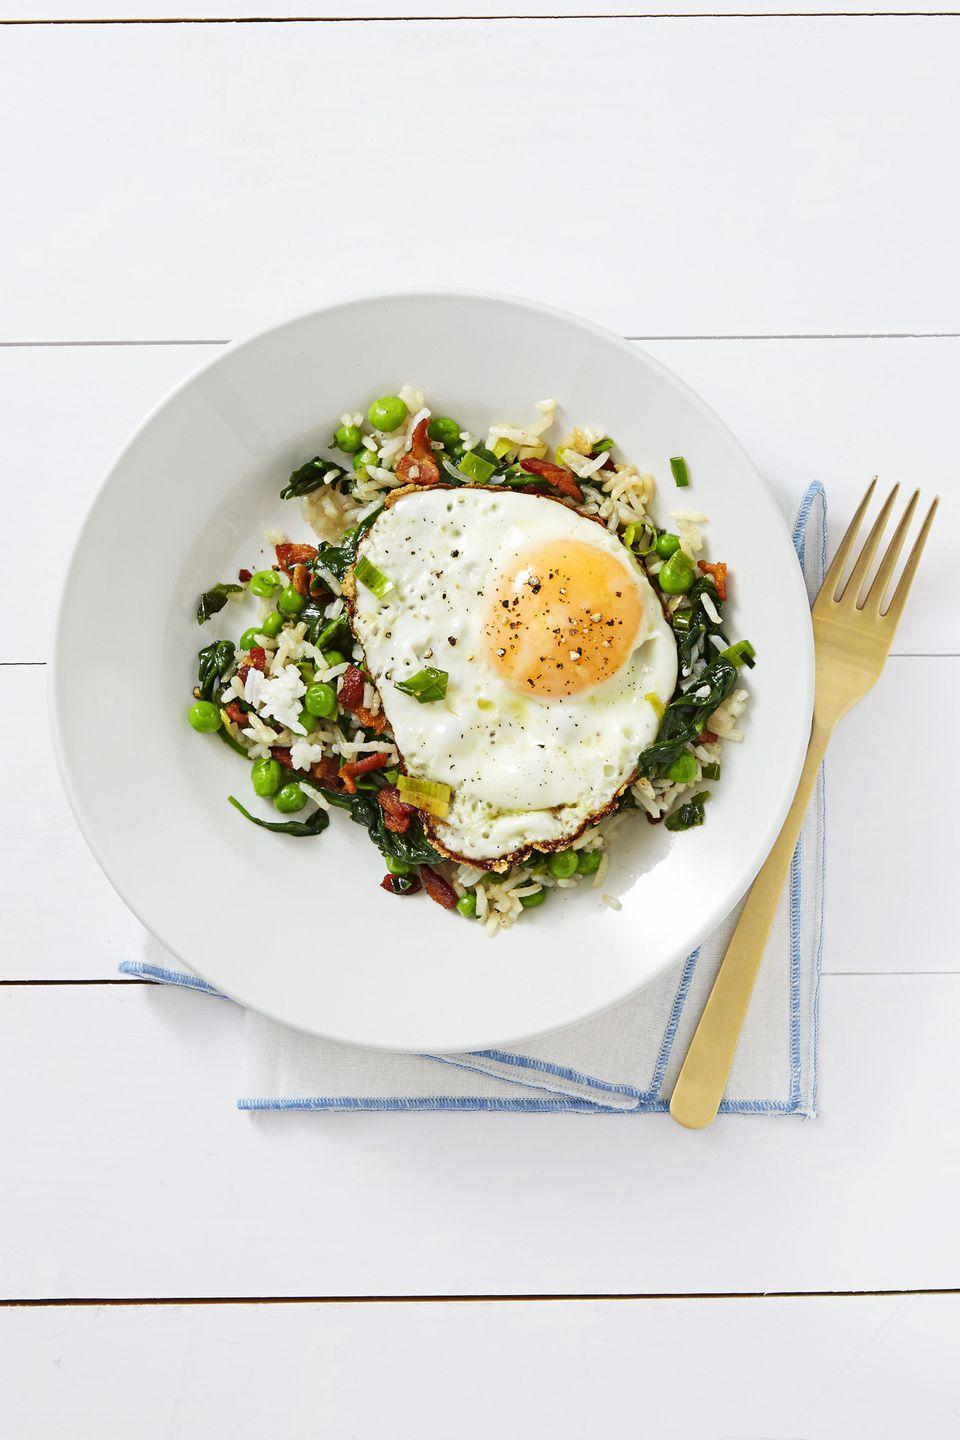 """<p>What's the key to getting brunch on the table fast? Starting with last night's leftovers (i.e. basic fried rice) ... and then adding <a href=""""https://www.goodhousekeeping.com/food-recipes/cooking/g4679/how-to-cook-bacon-in-the-oven/"""" rel=""""nofollow noopener"""" target=""""_blank"""" data-ylk=""""slk:bacon"""" class=""""link rapid-noclick-resp"""">bacon</a>. </p><p><em><a href=""""https://www.goodhousekeeping.com/food-recipes/a37557/bacon-egg-fried-rice-recipe/"""" rel=""""nofollow noopener"""" target=""""_blank"""" data-ylk=""""slk:Get the recipe for Bacon and Egg Fried Rice »"""" class=""""link rapid-noclick-resp"""">Get the recipe for Bacon and Egg Fried Rice »</a></em></p><p><strong>RELATED: </strong><a href=""""https://www.goodhousekeeping.com/cooking-tools/g25918220/best-egg-cookers/"""" rel=""""nofollow noopener"""" target=""""_blank"""" data-ylk=""""slk:The Best Egg Cookers to Buy Right Now, According to Kitchen Appliance Experts"""" class=""""link rapid-noclick-resp"""">The Best Egg Cookers to Buy Right Now, According to Kitchen Appliance Experts</a></p>"""